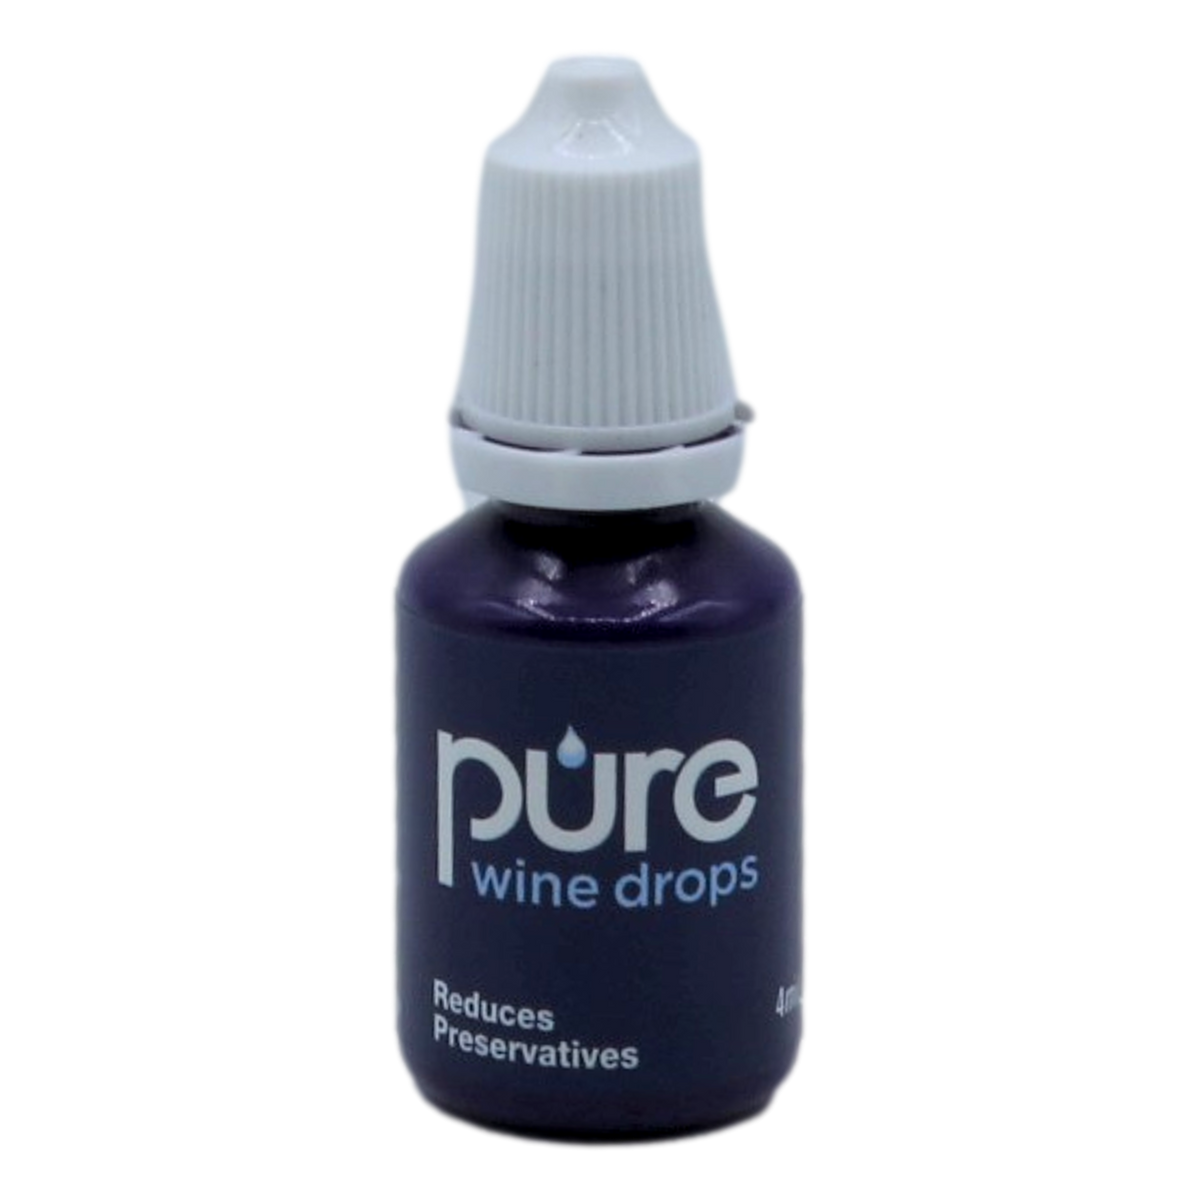 Pure Wine Drops